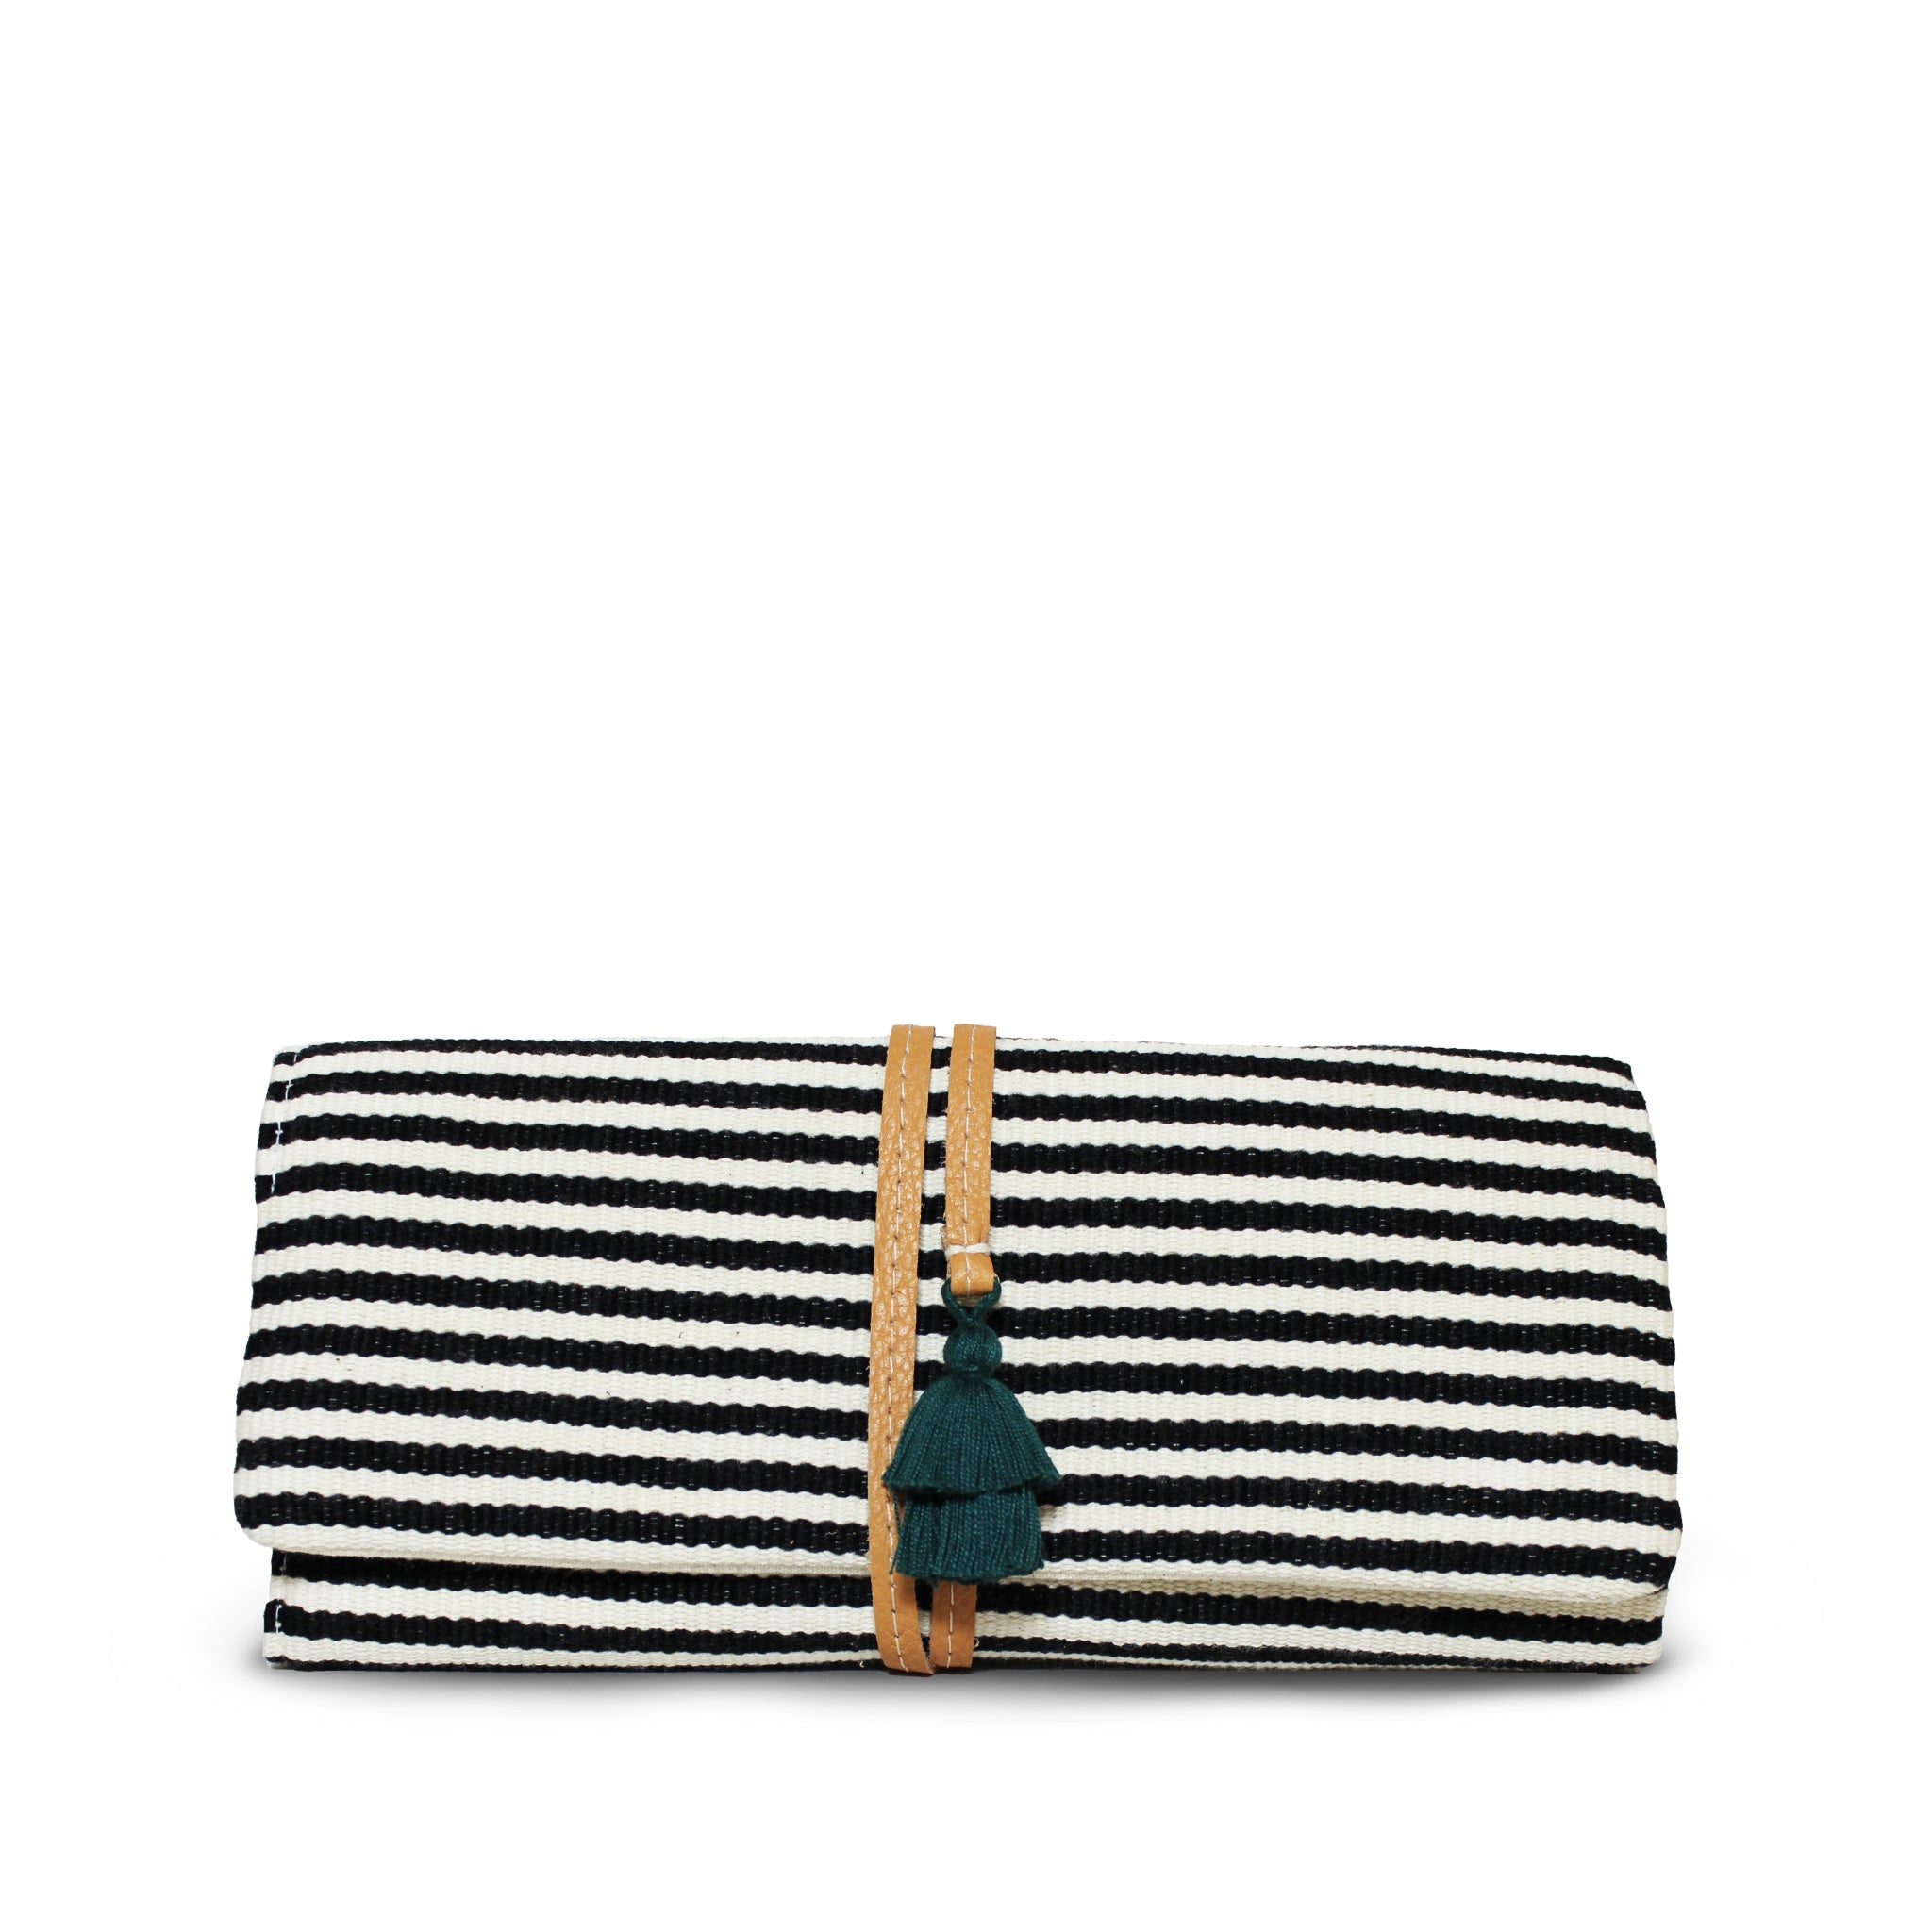 Hand woven Lilia Jewelry Roll - Ethical Shopping at Mercado Global